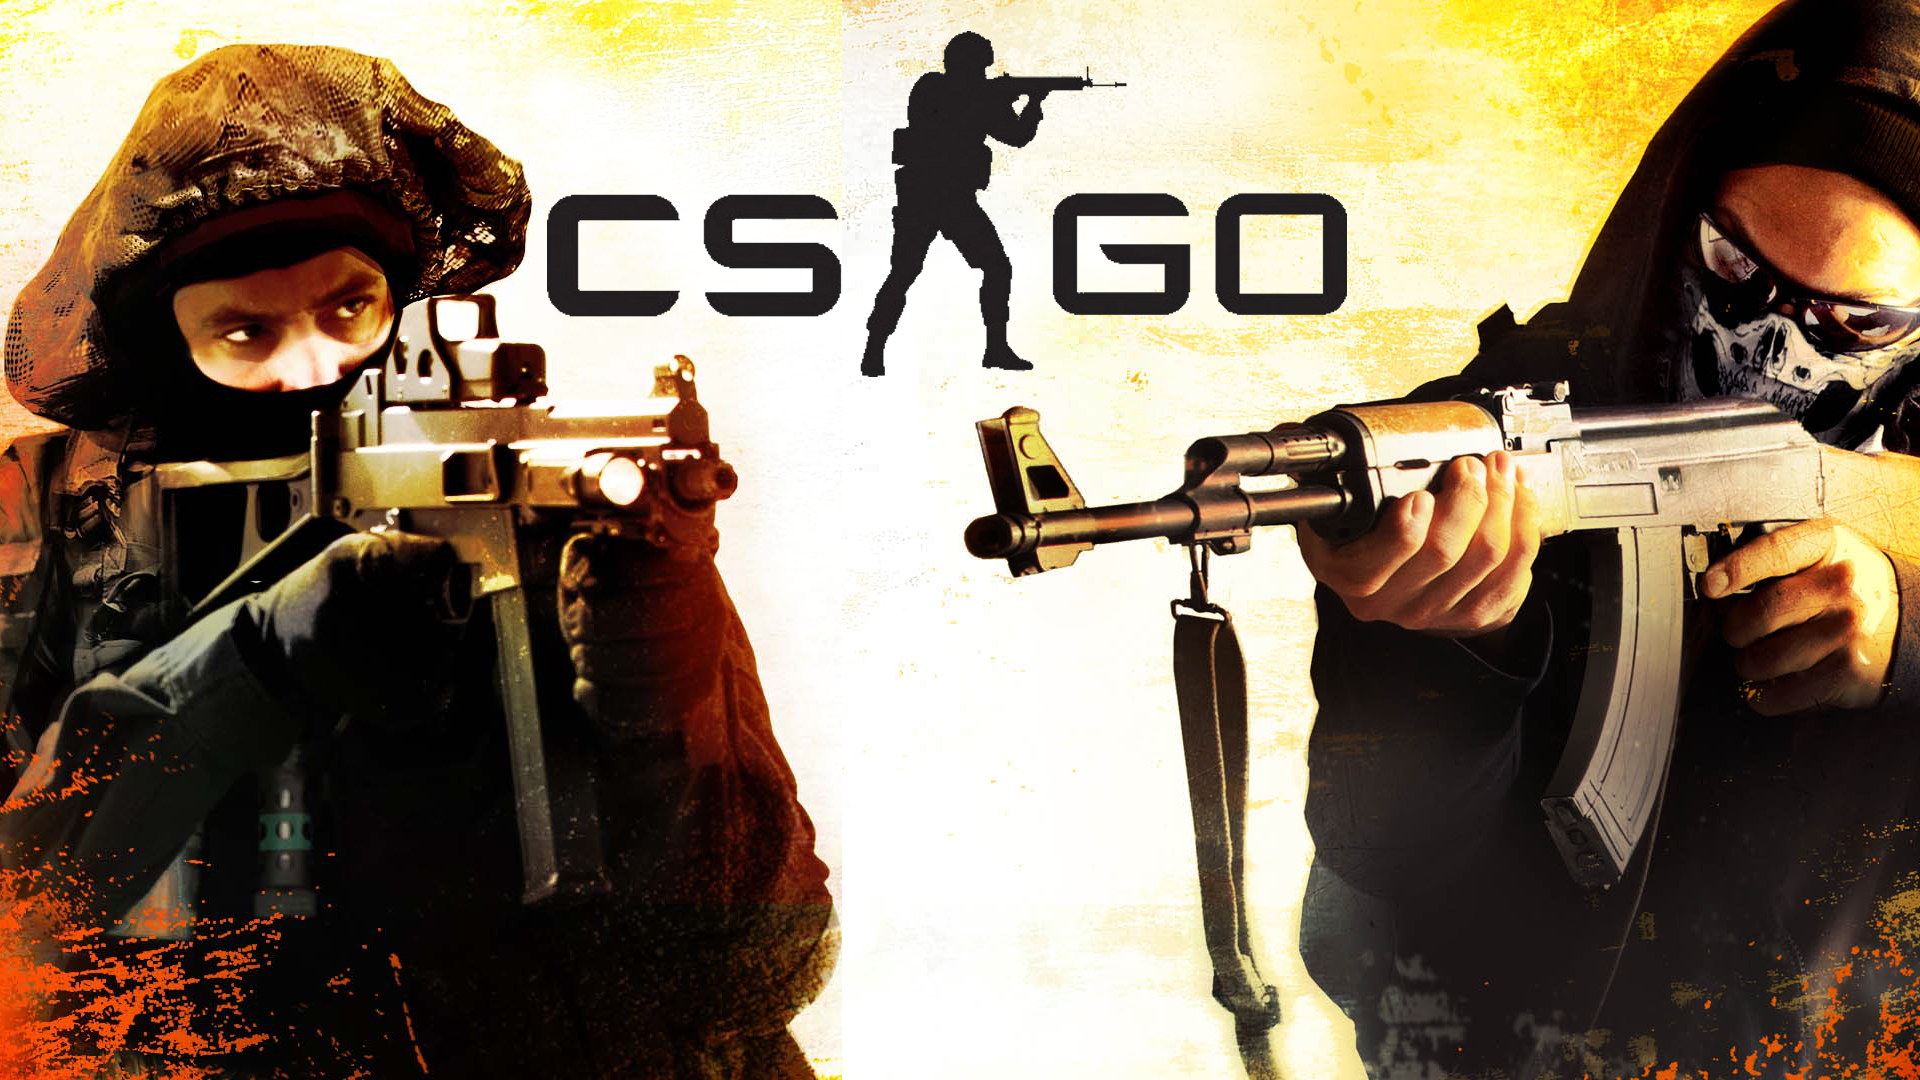 CSGO rank boosting is getting immensely popular